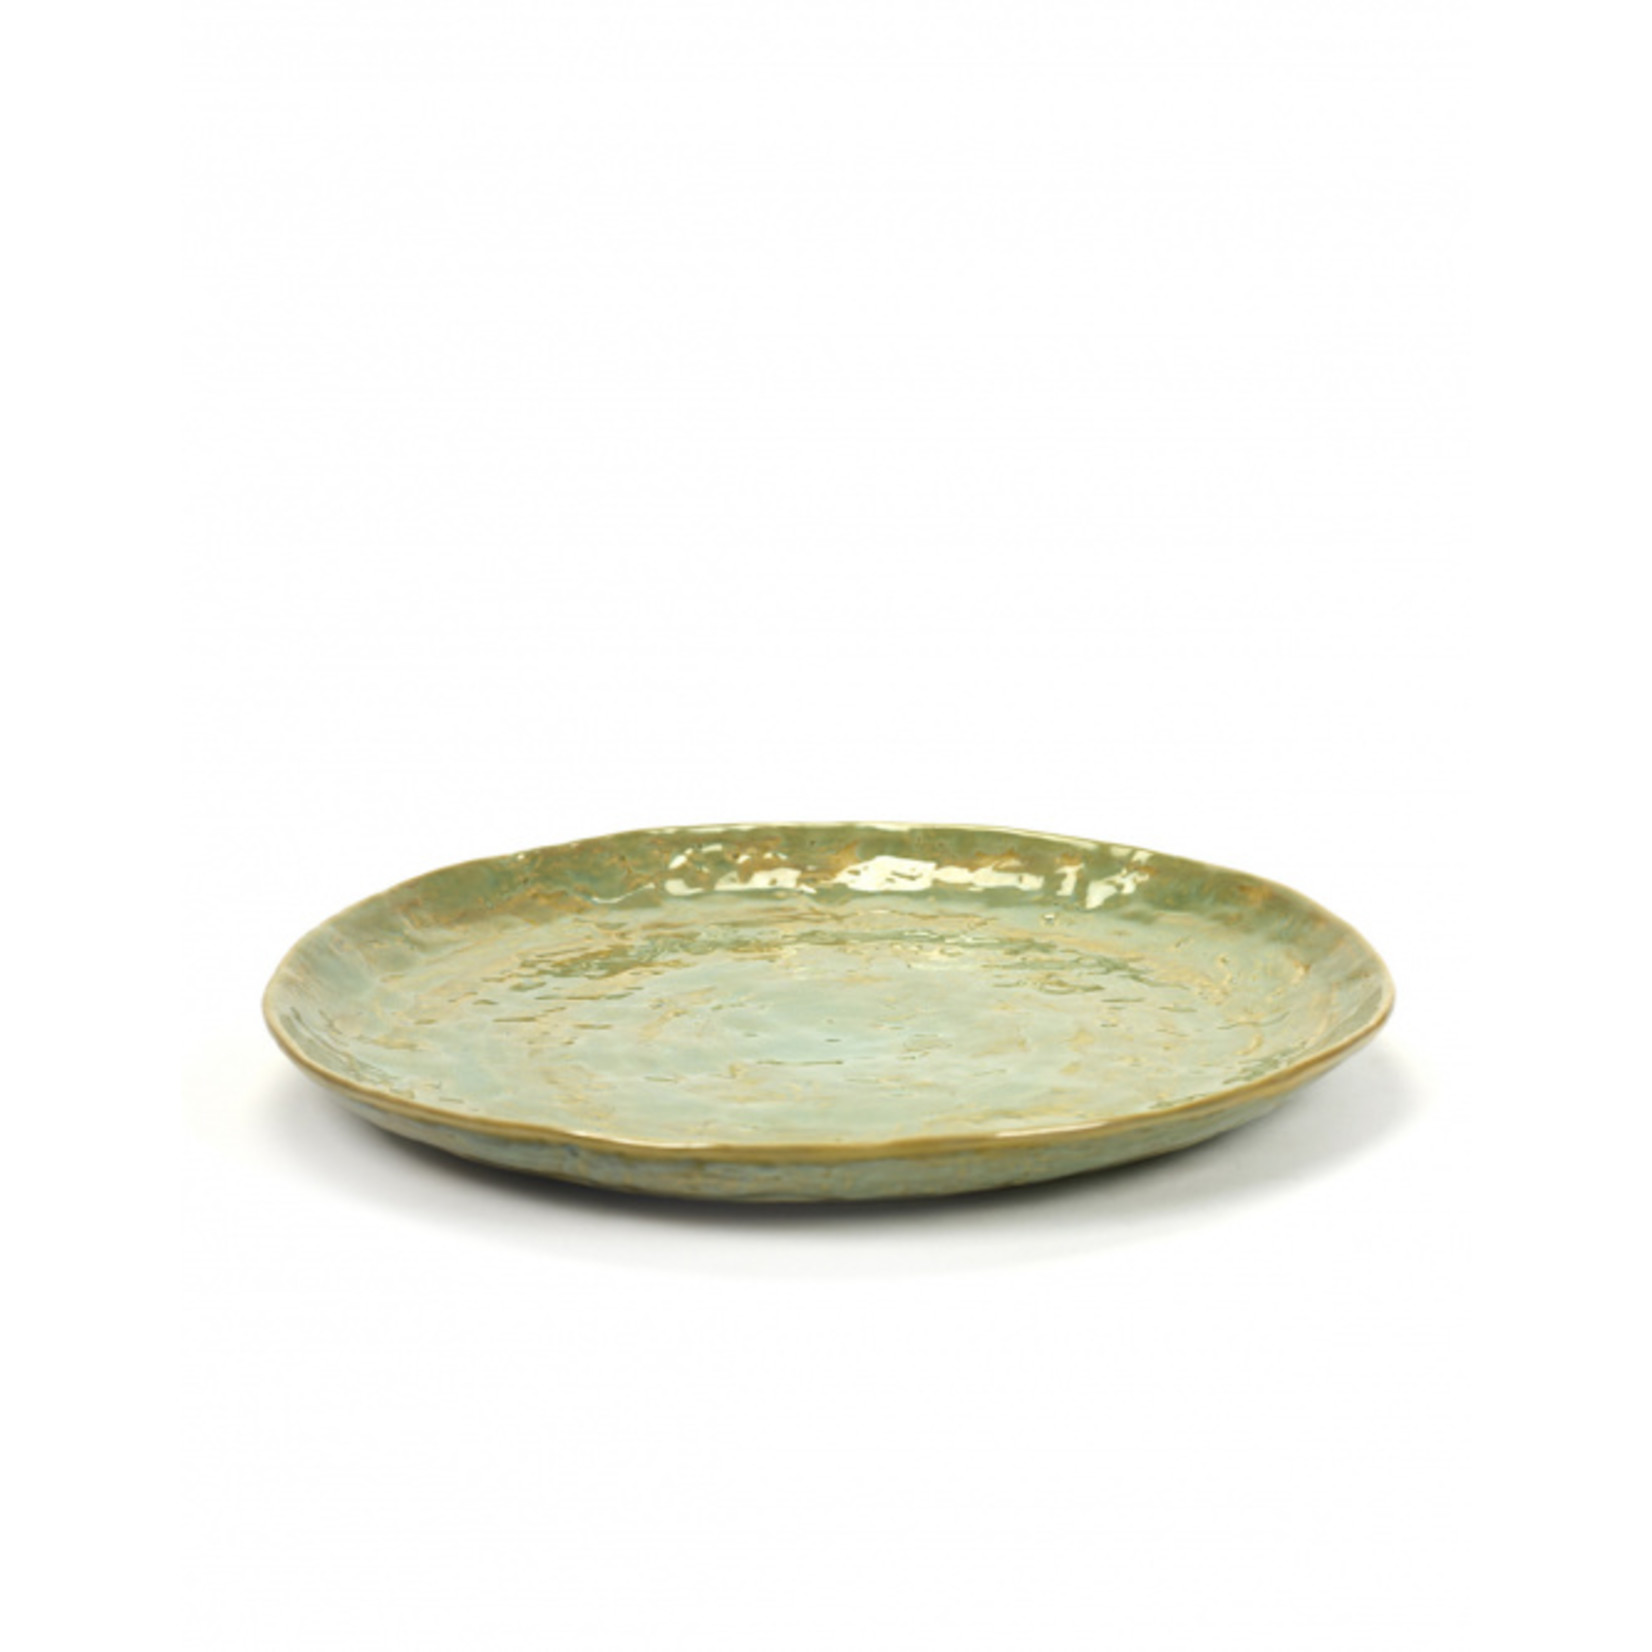 Pascale Naessens collection Pure Bord zeegroen